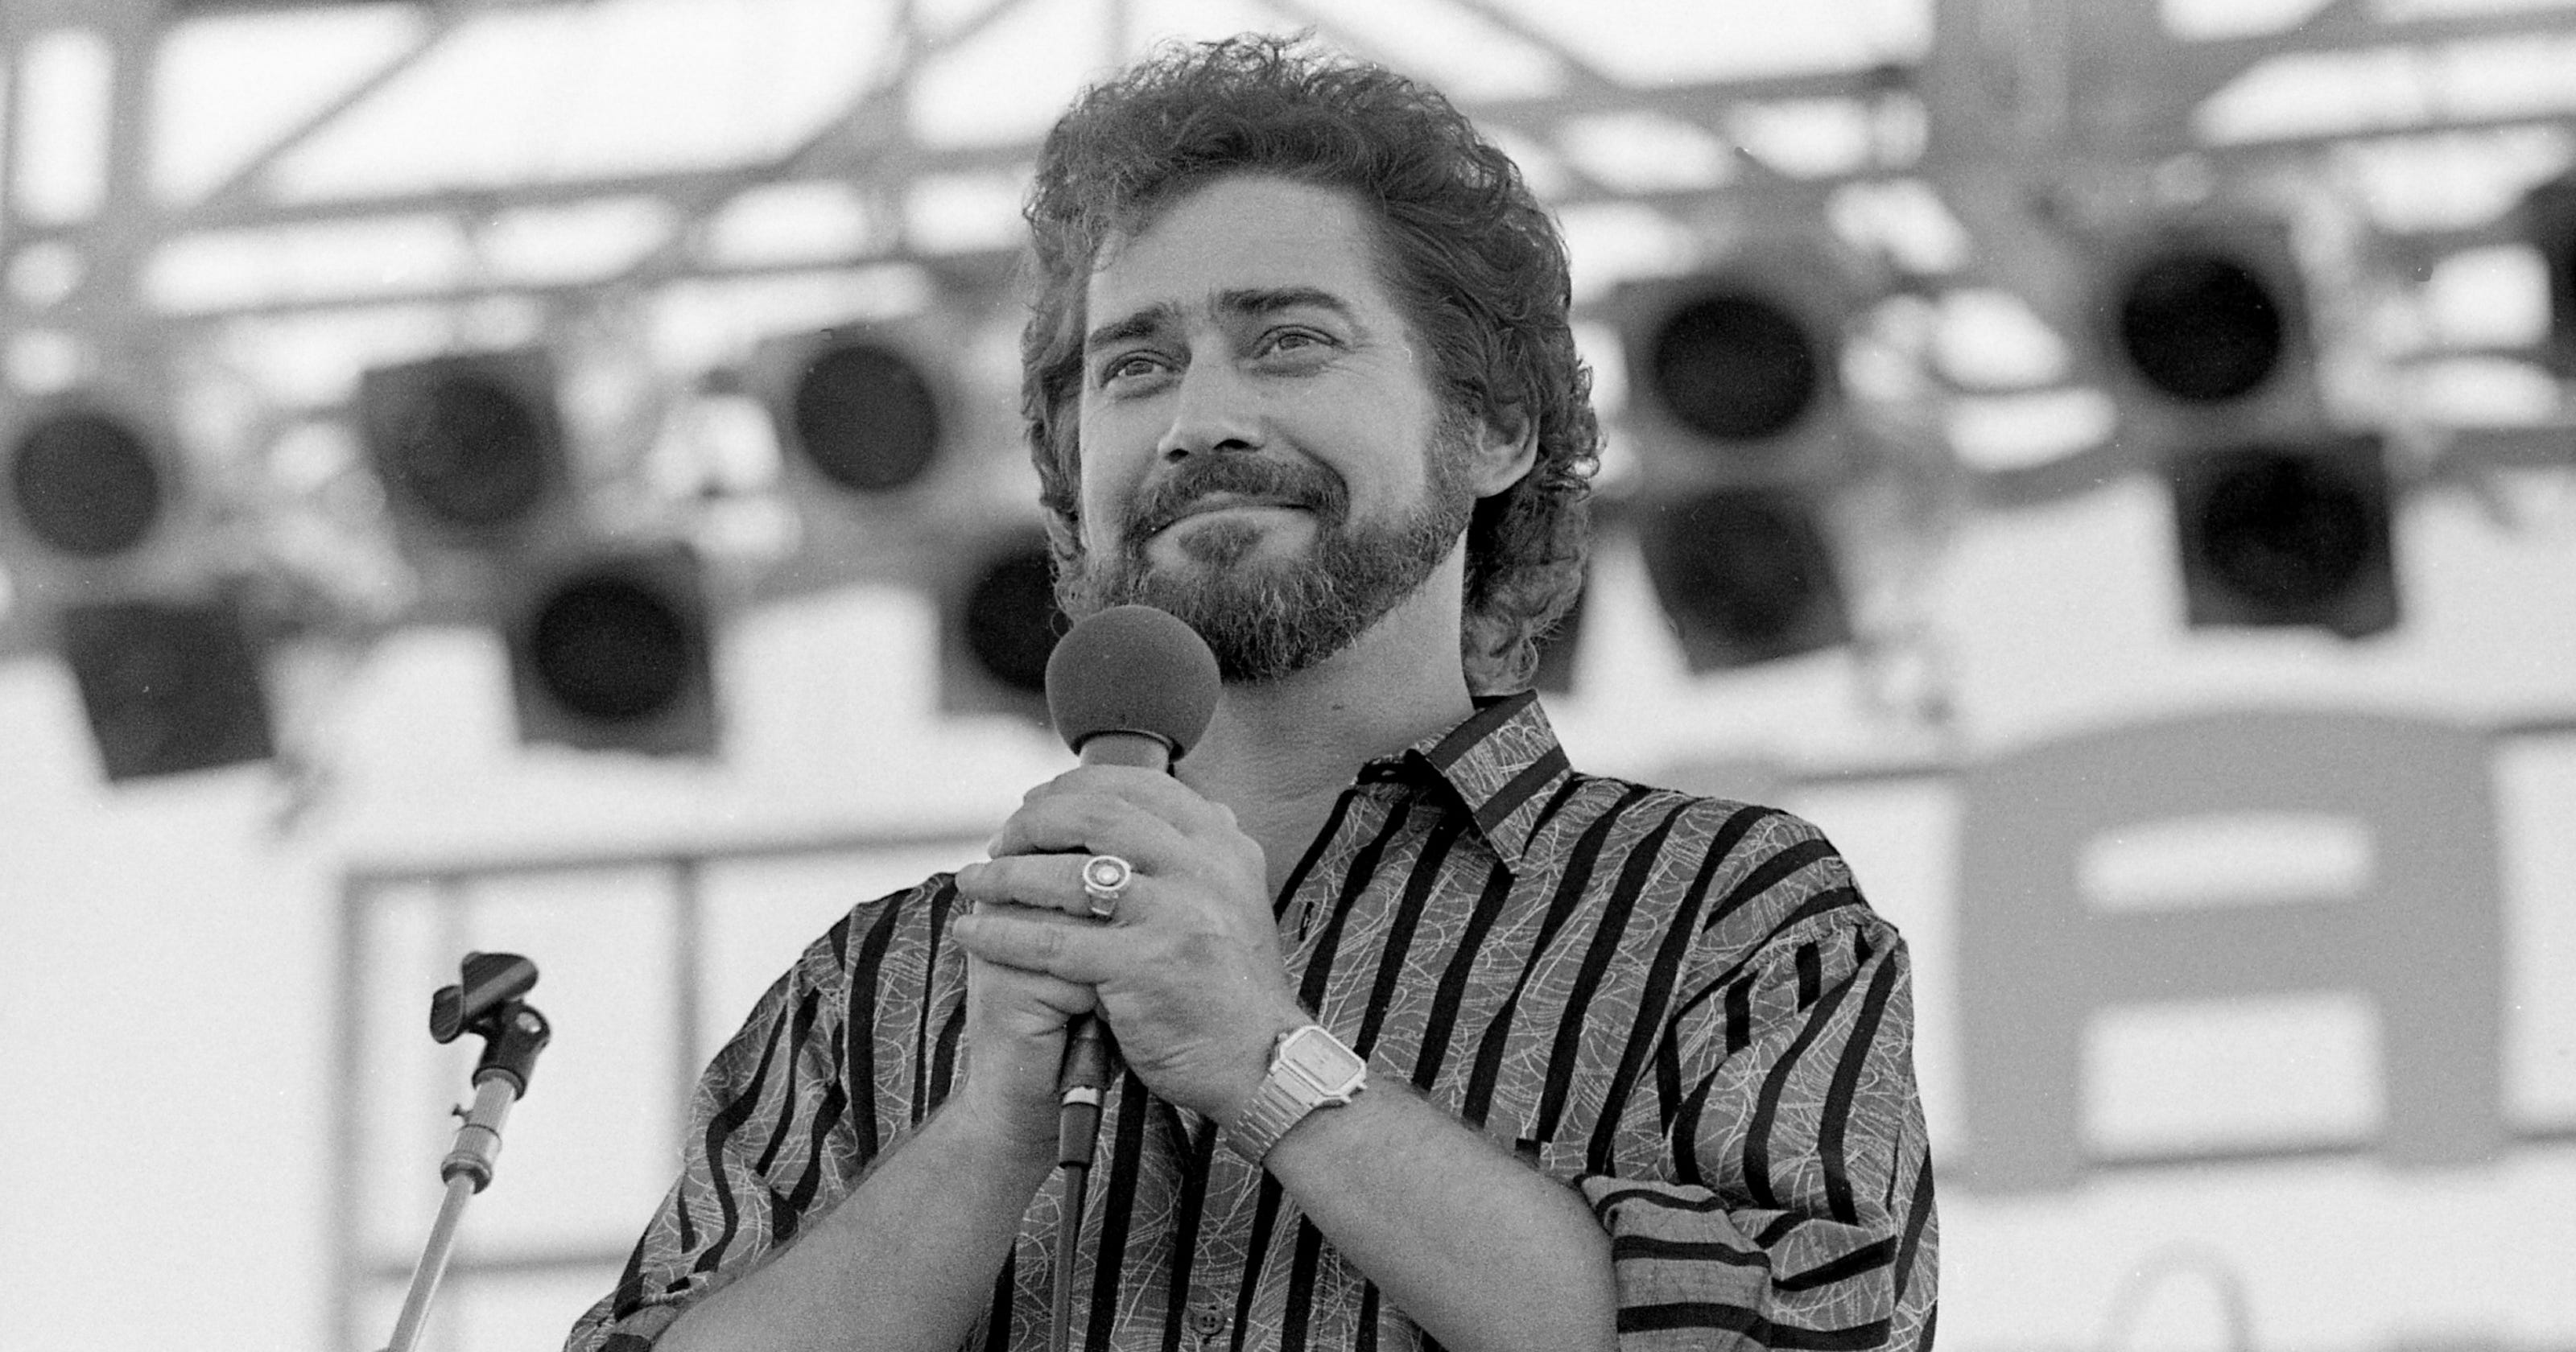 Earl Thomas Conley, who sang 'Holding Her and Loving You